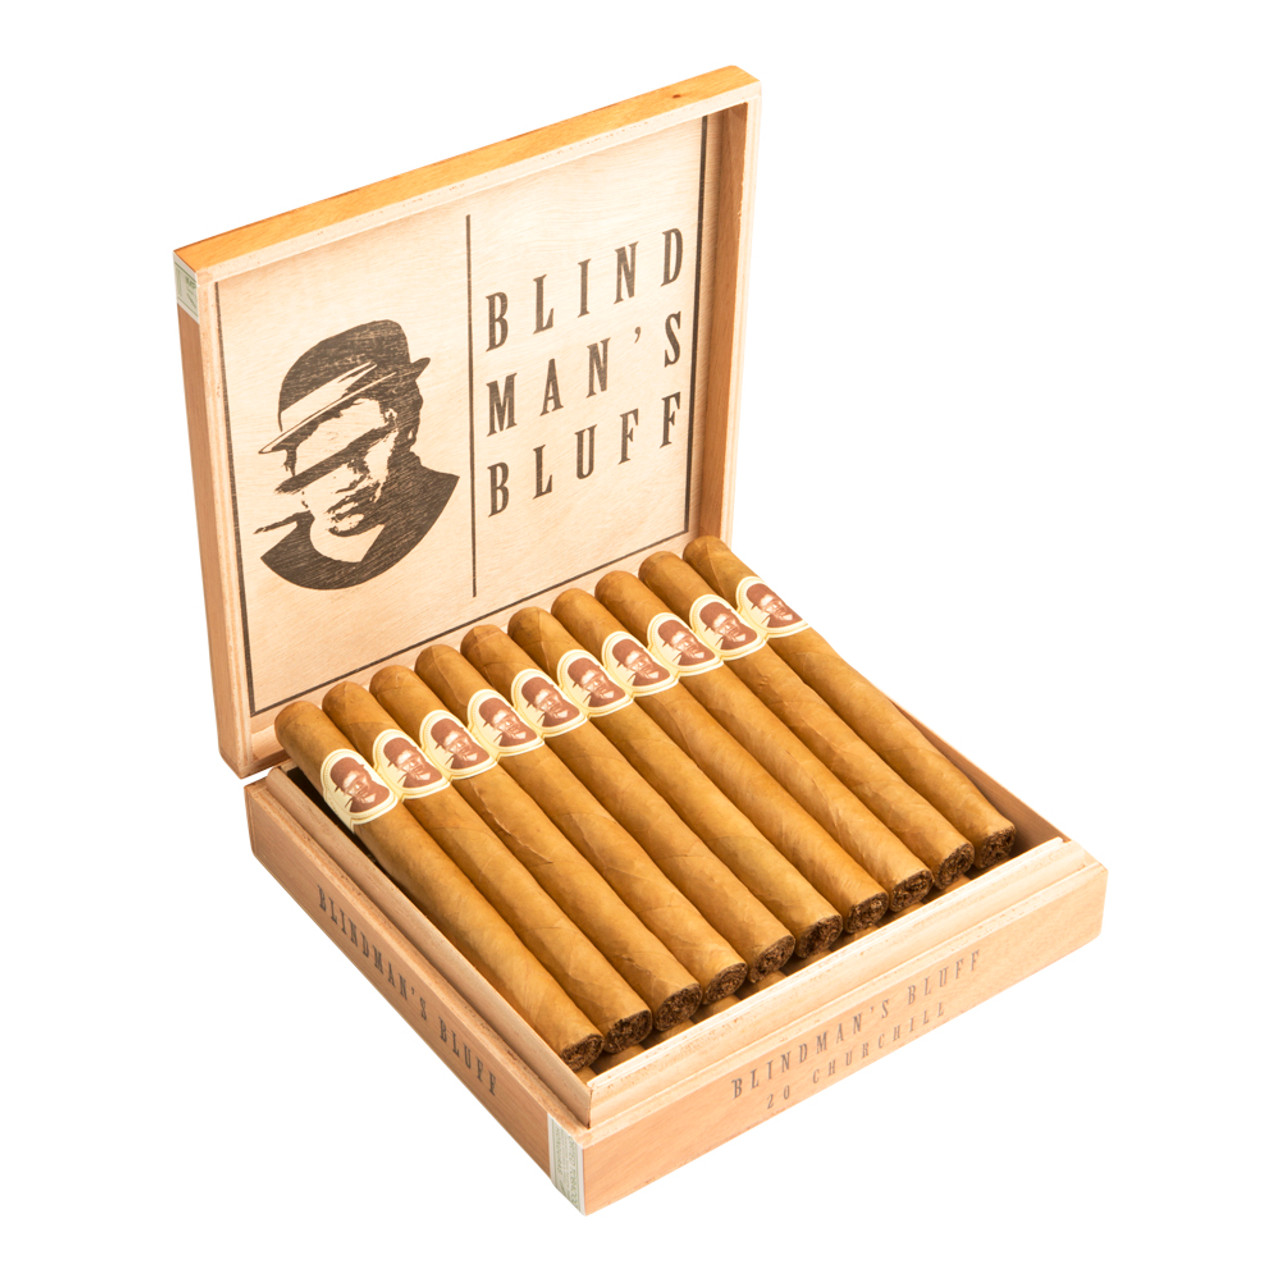 Blind Man's Bluff by Caldwell Cigar Co. Connecticut Churchill Cigars - 7 x 48 (Box of 20)